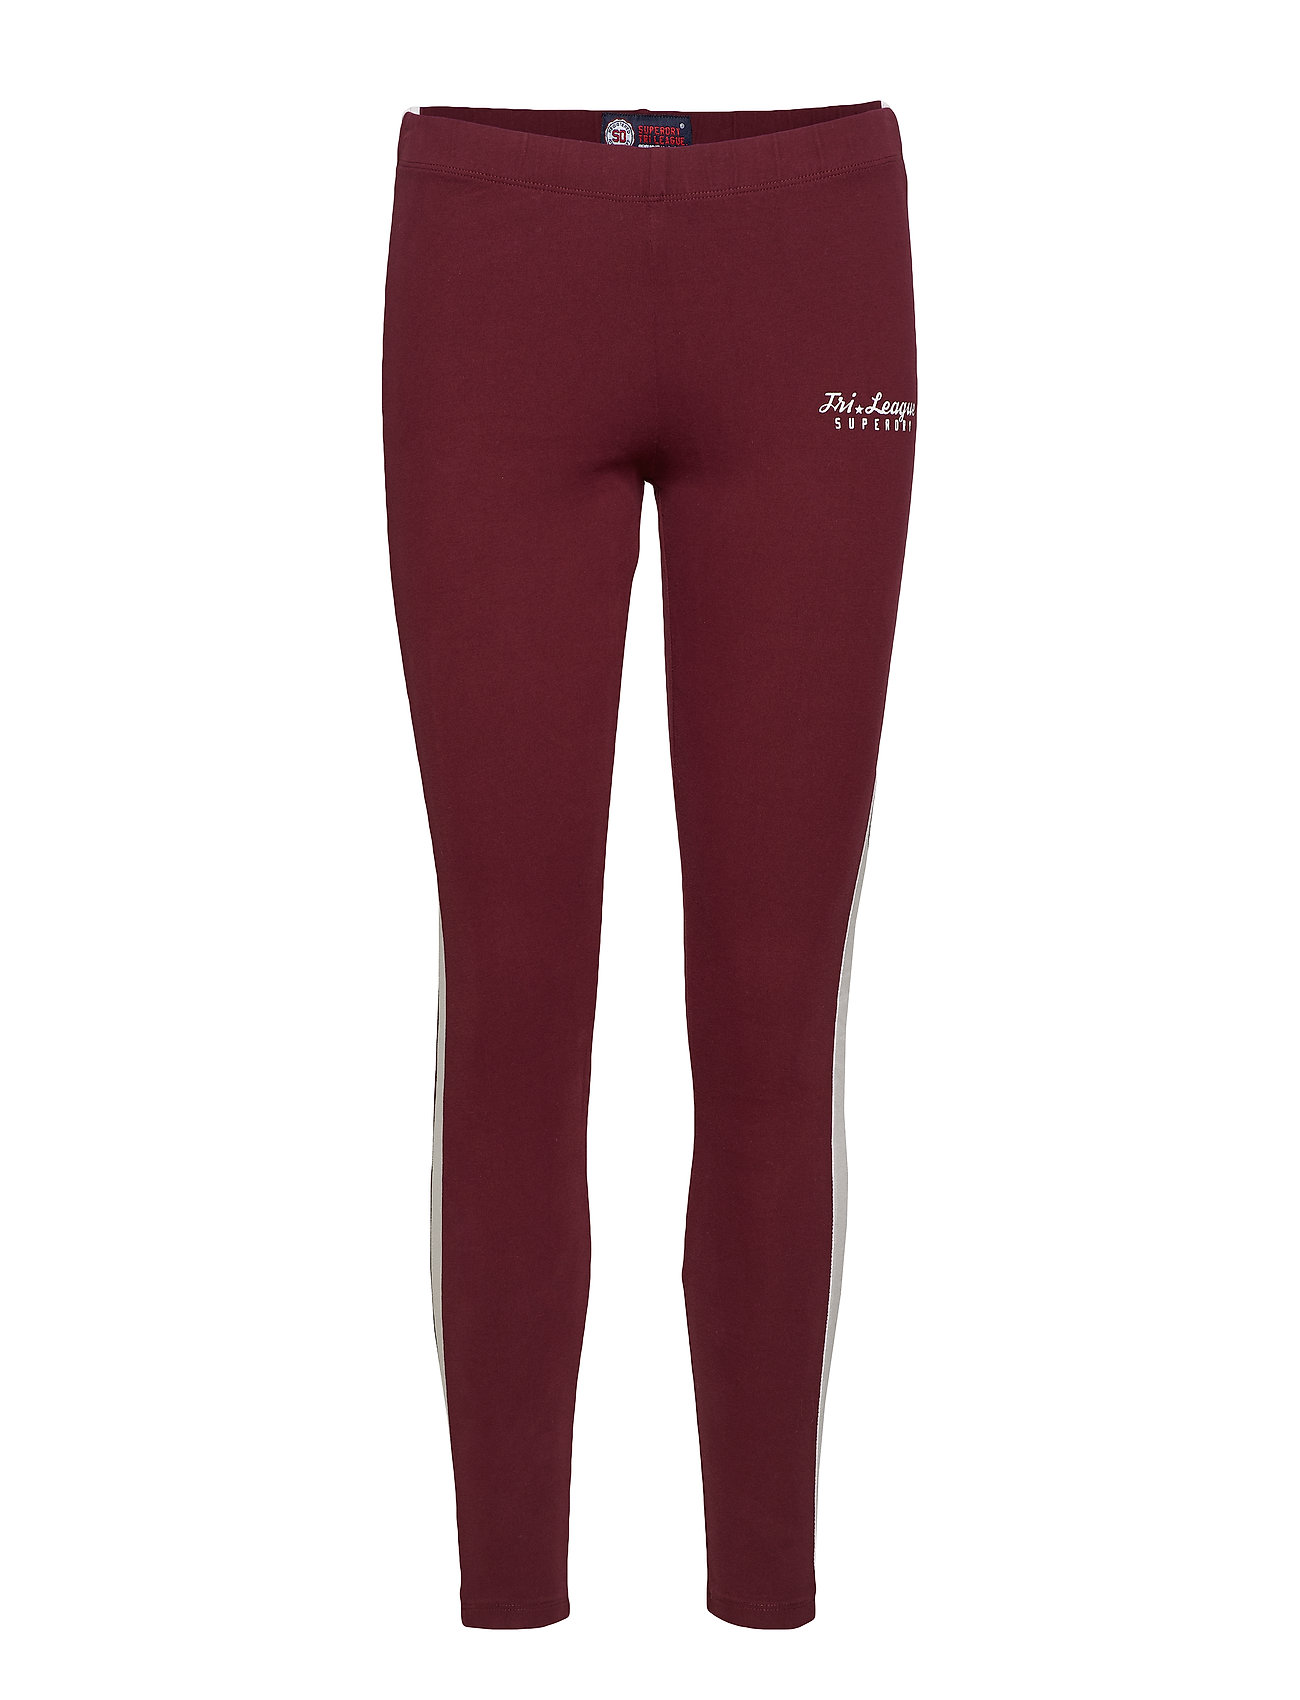 Superdry TRI LEAGUE GRAPHIC LEGGING - TRI BURGUNDY